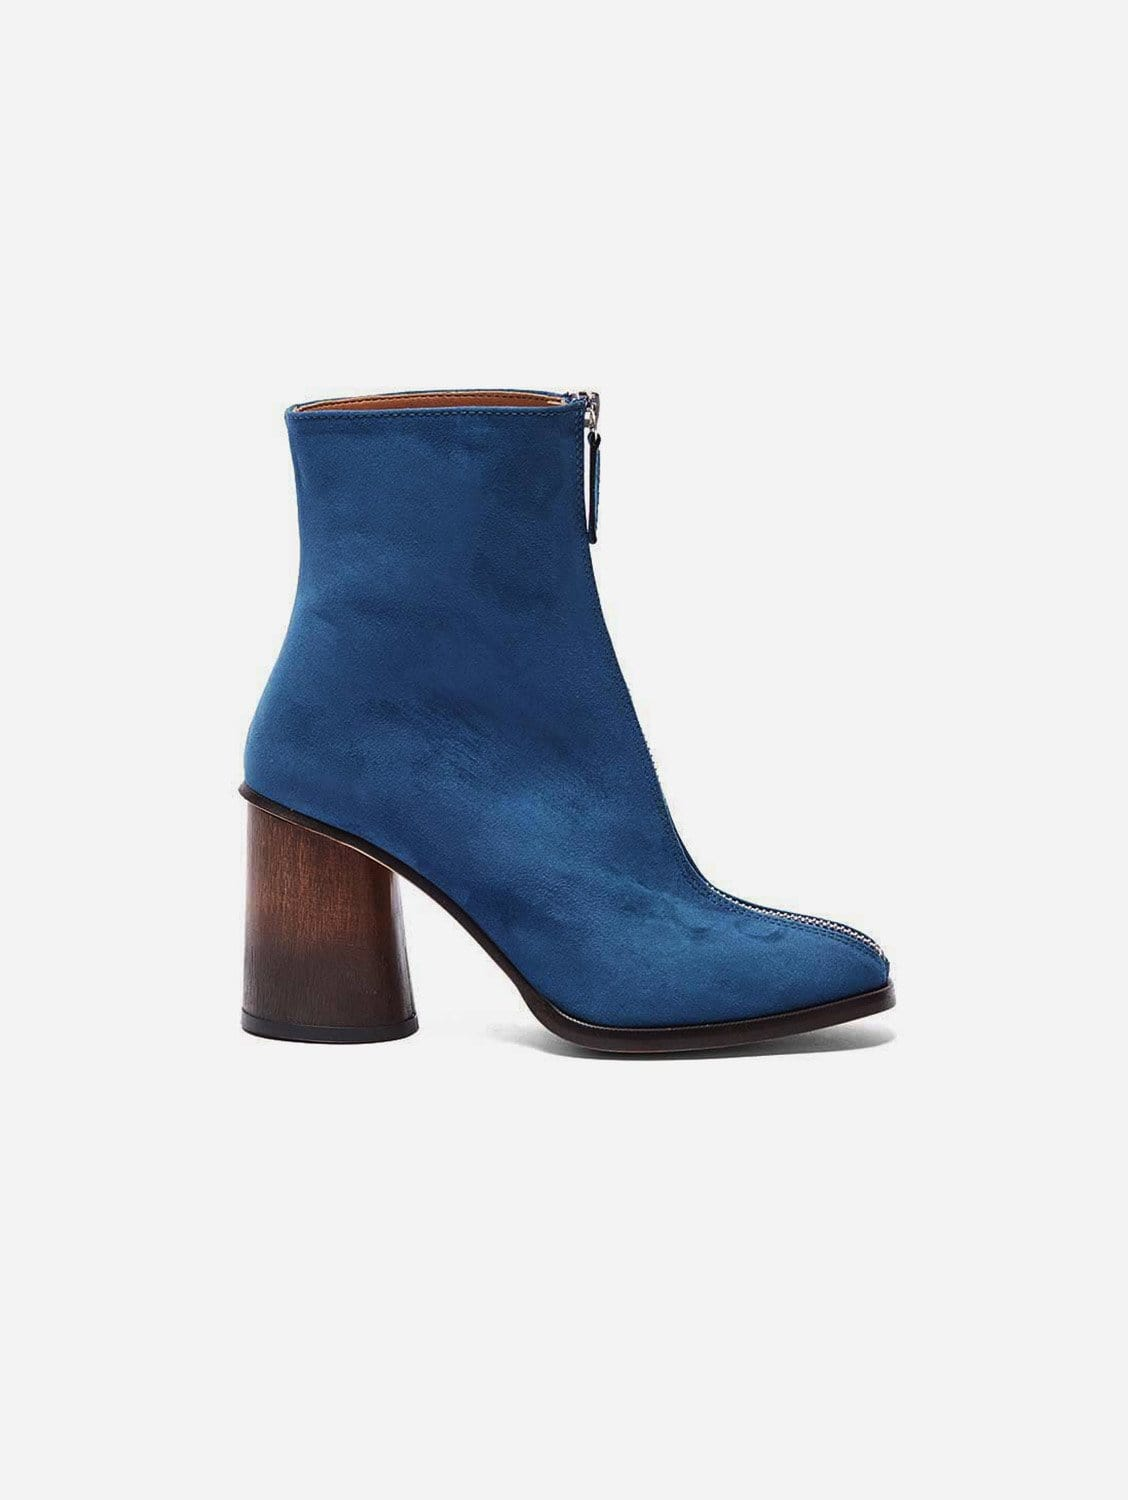 Lourdes Recycled Polyester Vegan Suede Ankle Boot   Blue